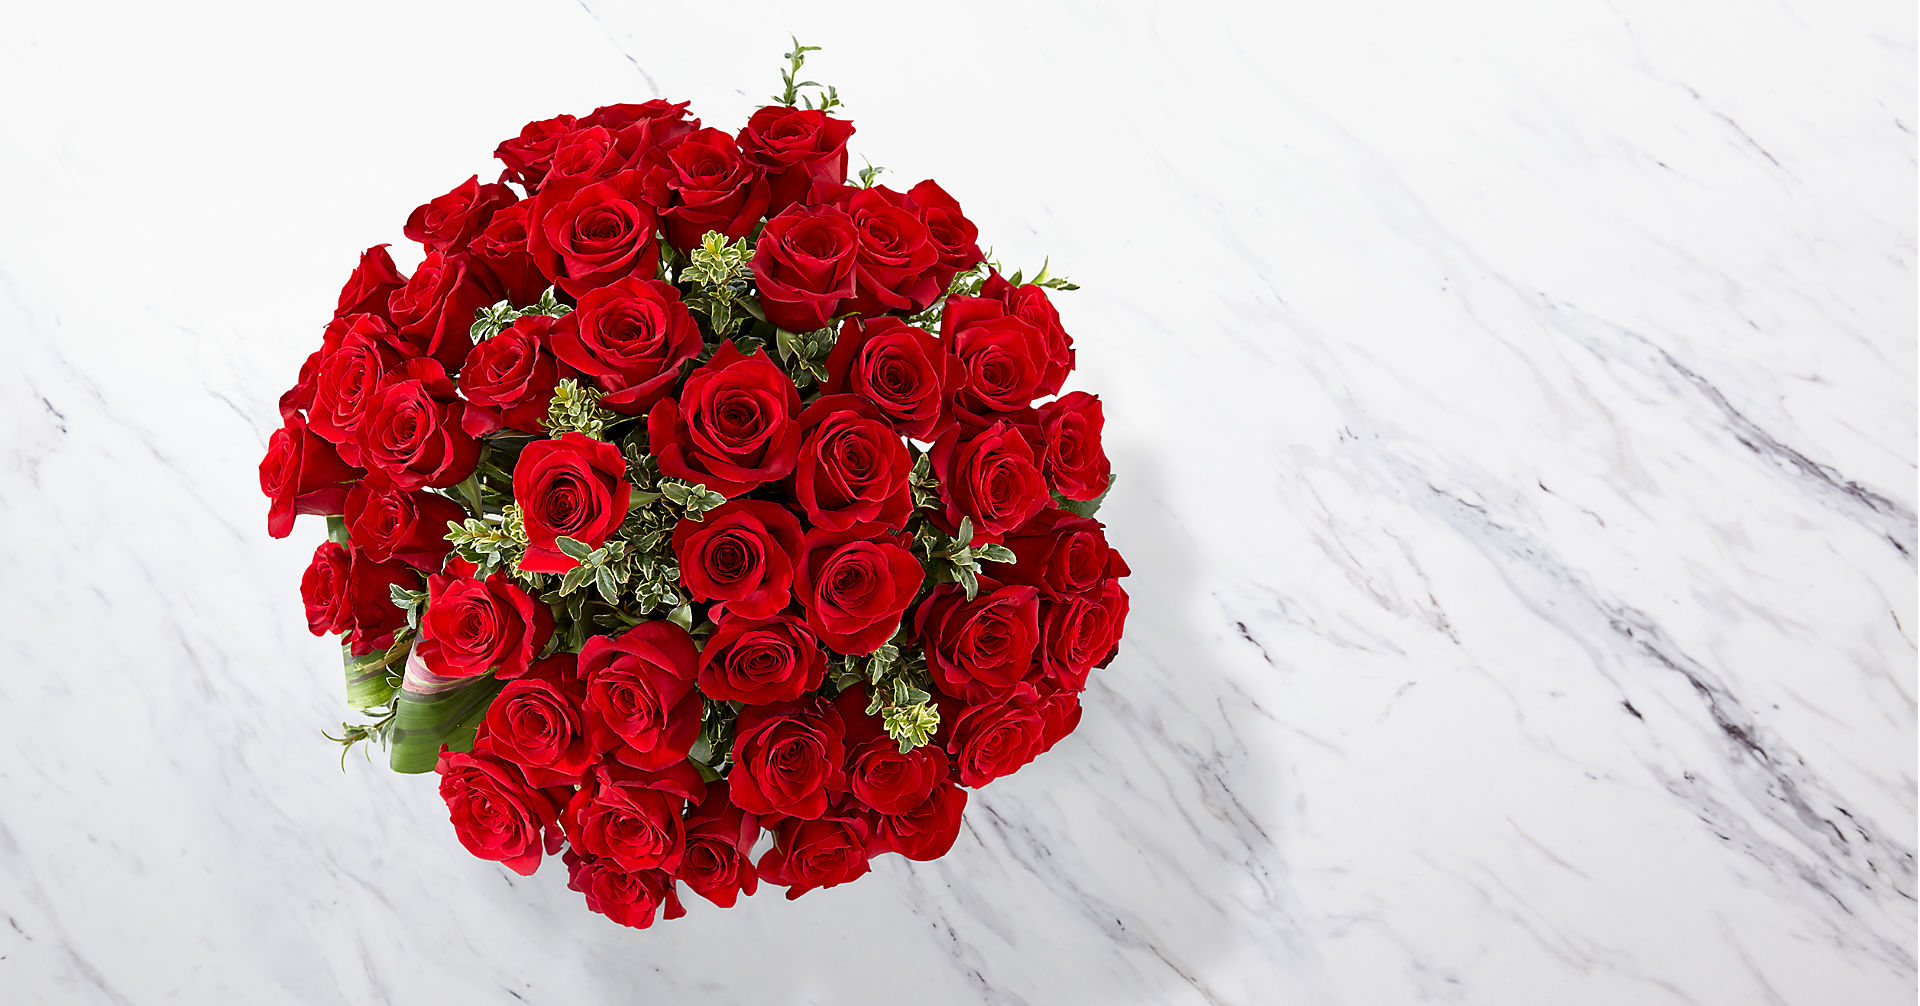 Fate Luxury Rose Bouquet - 48 Stems of 24-inch Premium Long-Stemmed Roses - Image 2 Of 5